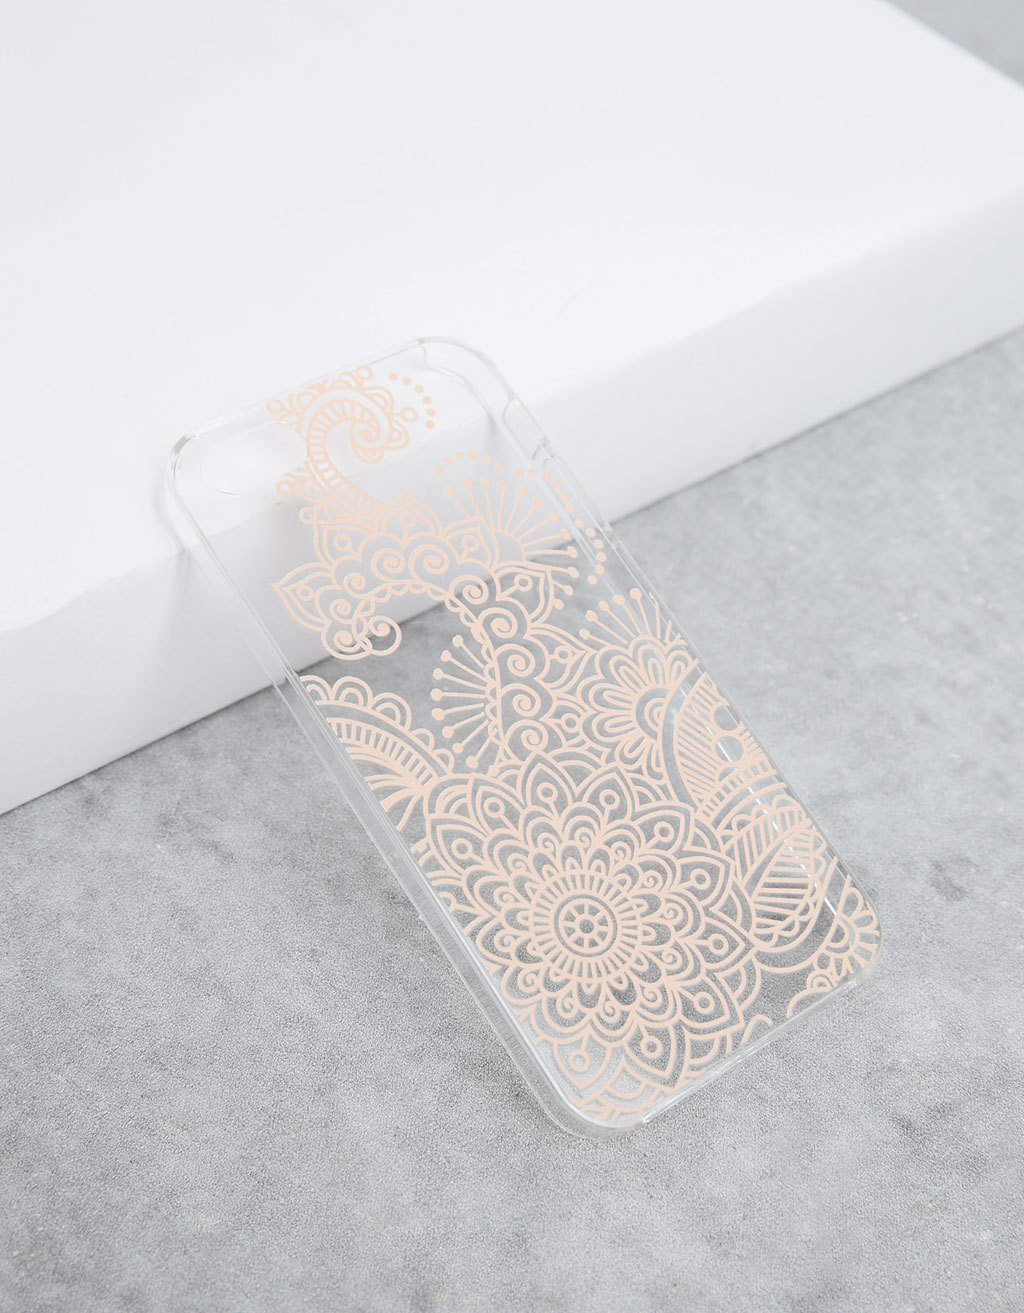 Carcasa tatuaje henna relieve iPhone 5/5s/5SE